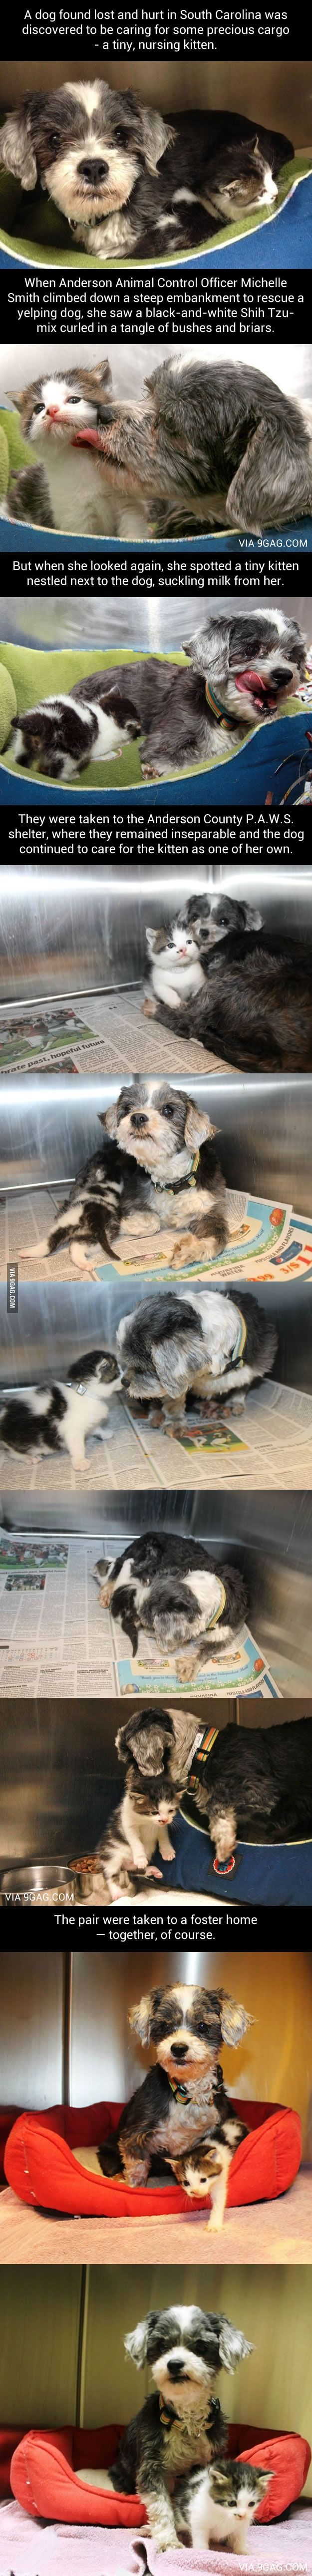 Lost Dog Finds A Tiny Kitten And Saves Her  In SC how adorable